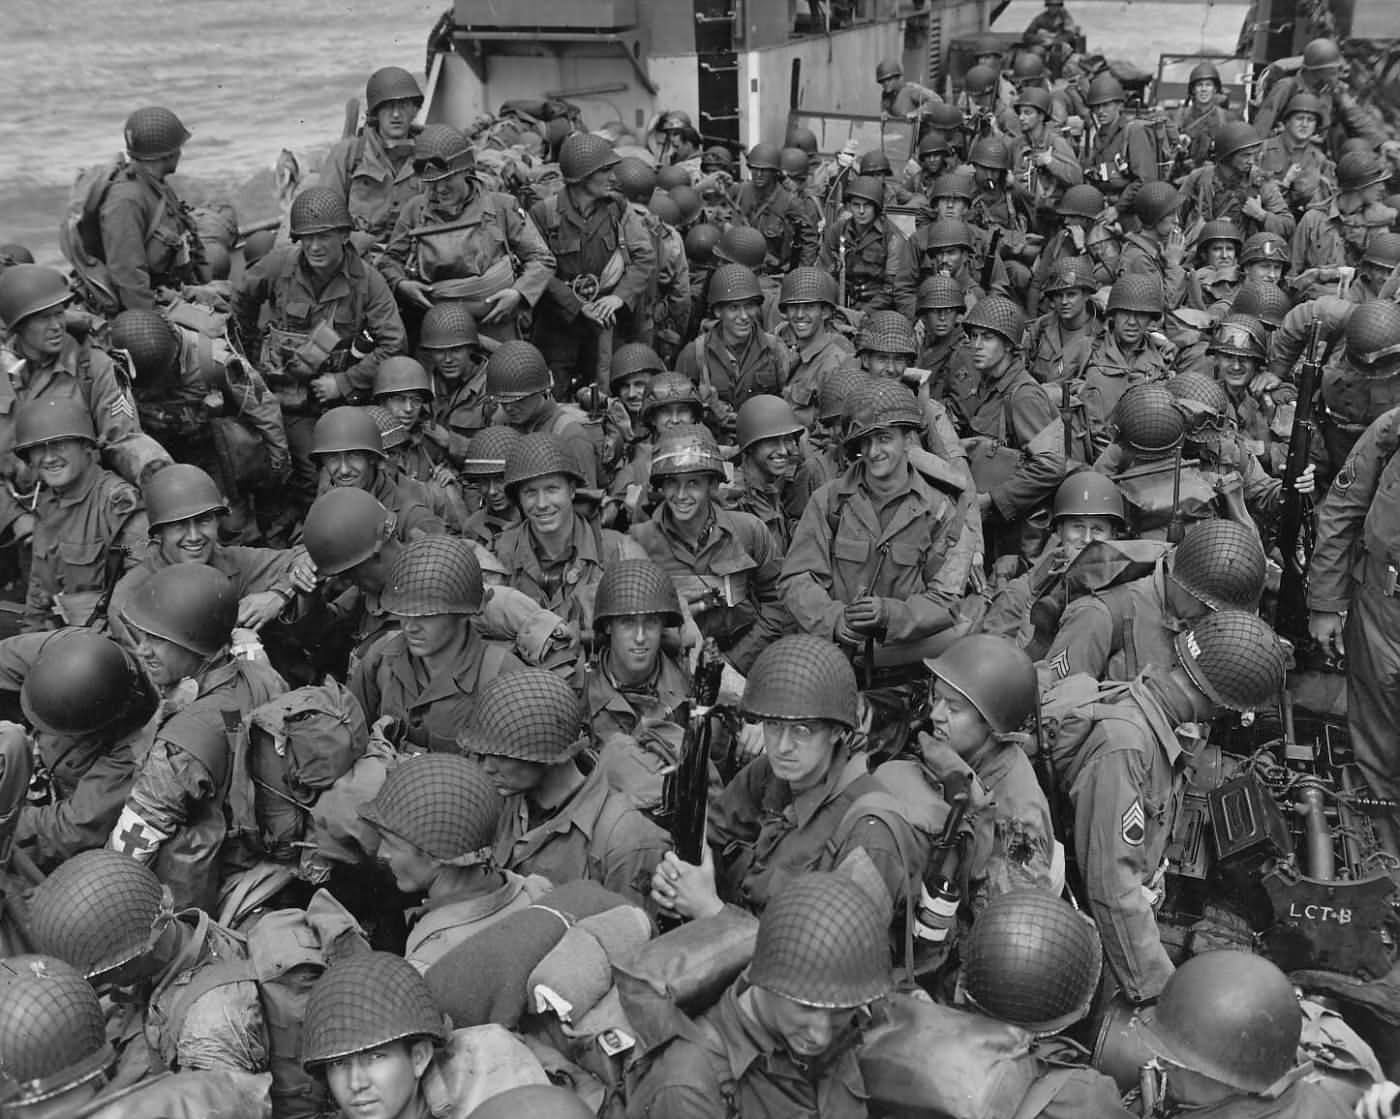 US Army GI's On LCI Landing Craft For D-Day Invasion Normandy June 1944